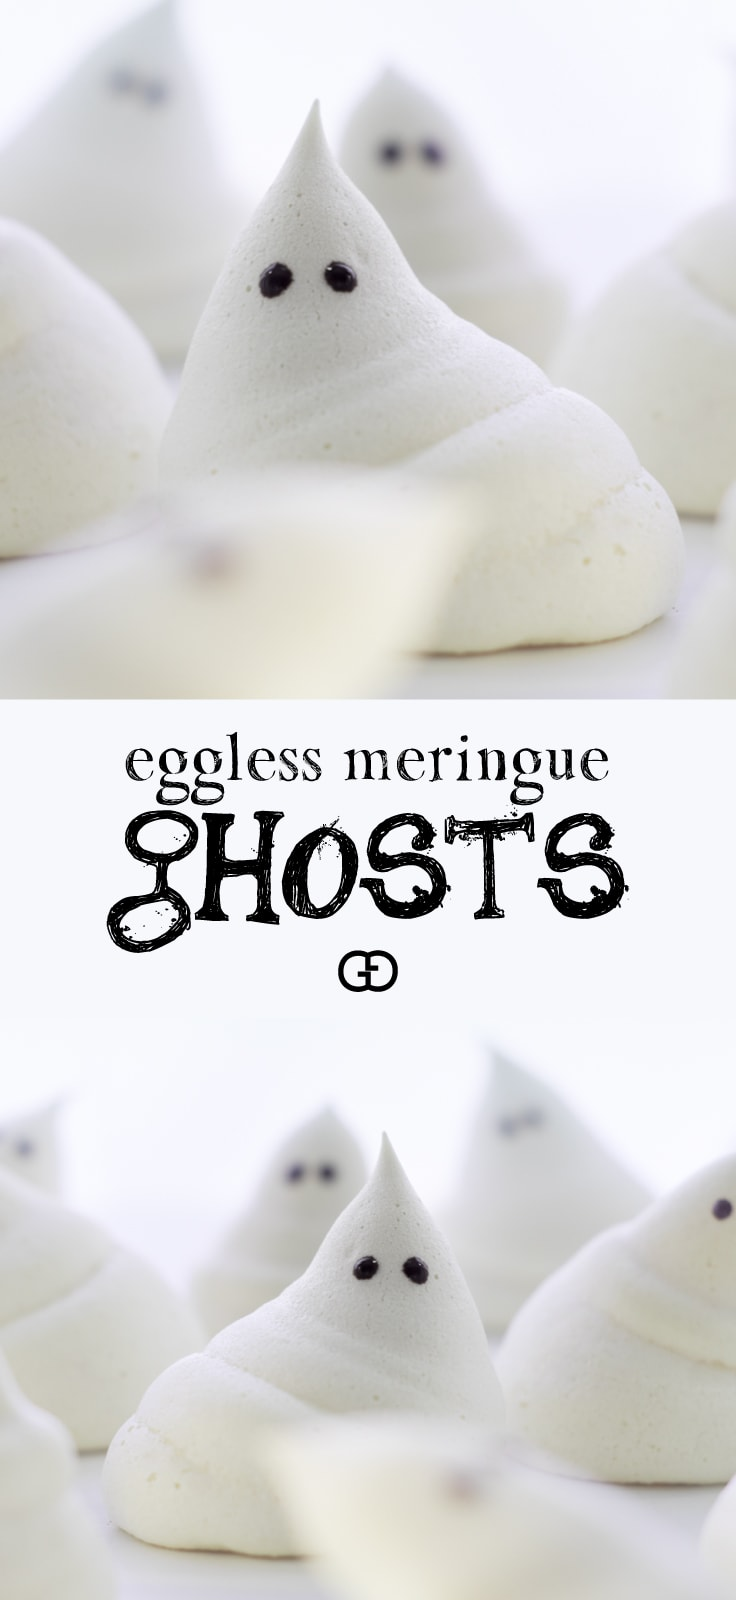 How to make Eggless Ghost Meringues for Halloween. An easy and cute Halloween dessert idea! #halloween #halloweentreat #easyhalloweendessert #halloweenfood #meringue #howtomakemeringue #ghosts #vegan